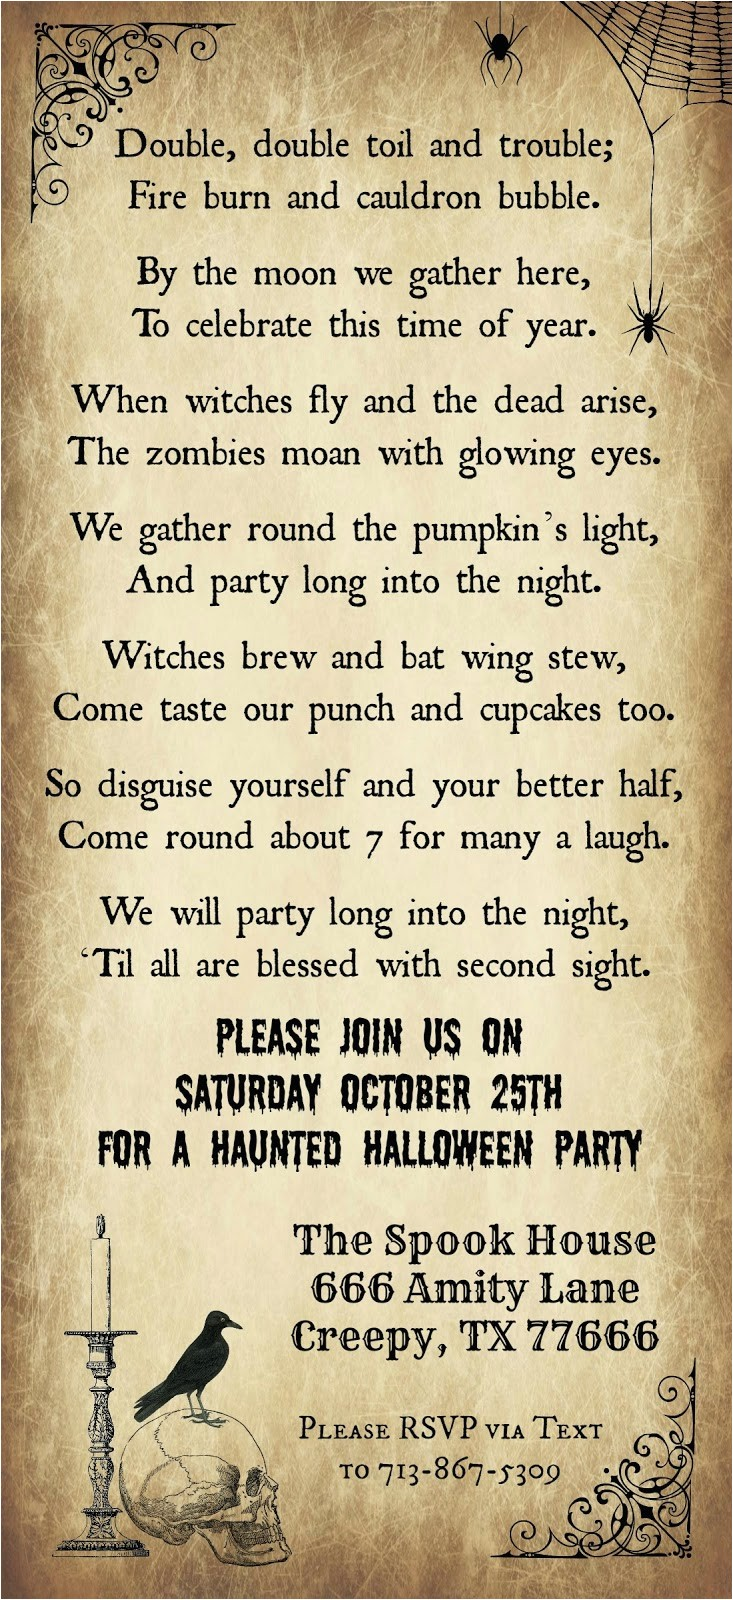 Halloween Party Poem Invite Crafty In Crosby Halloween Party Invitation 2014